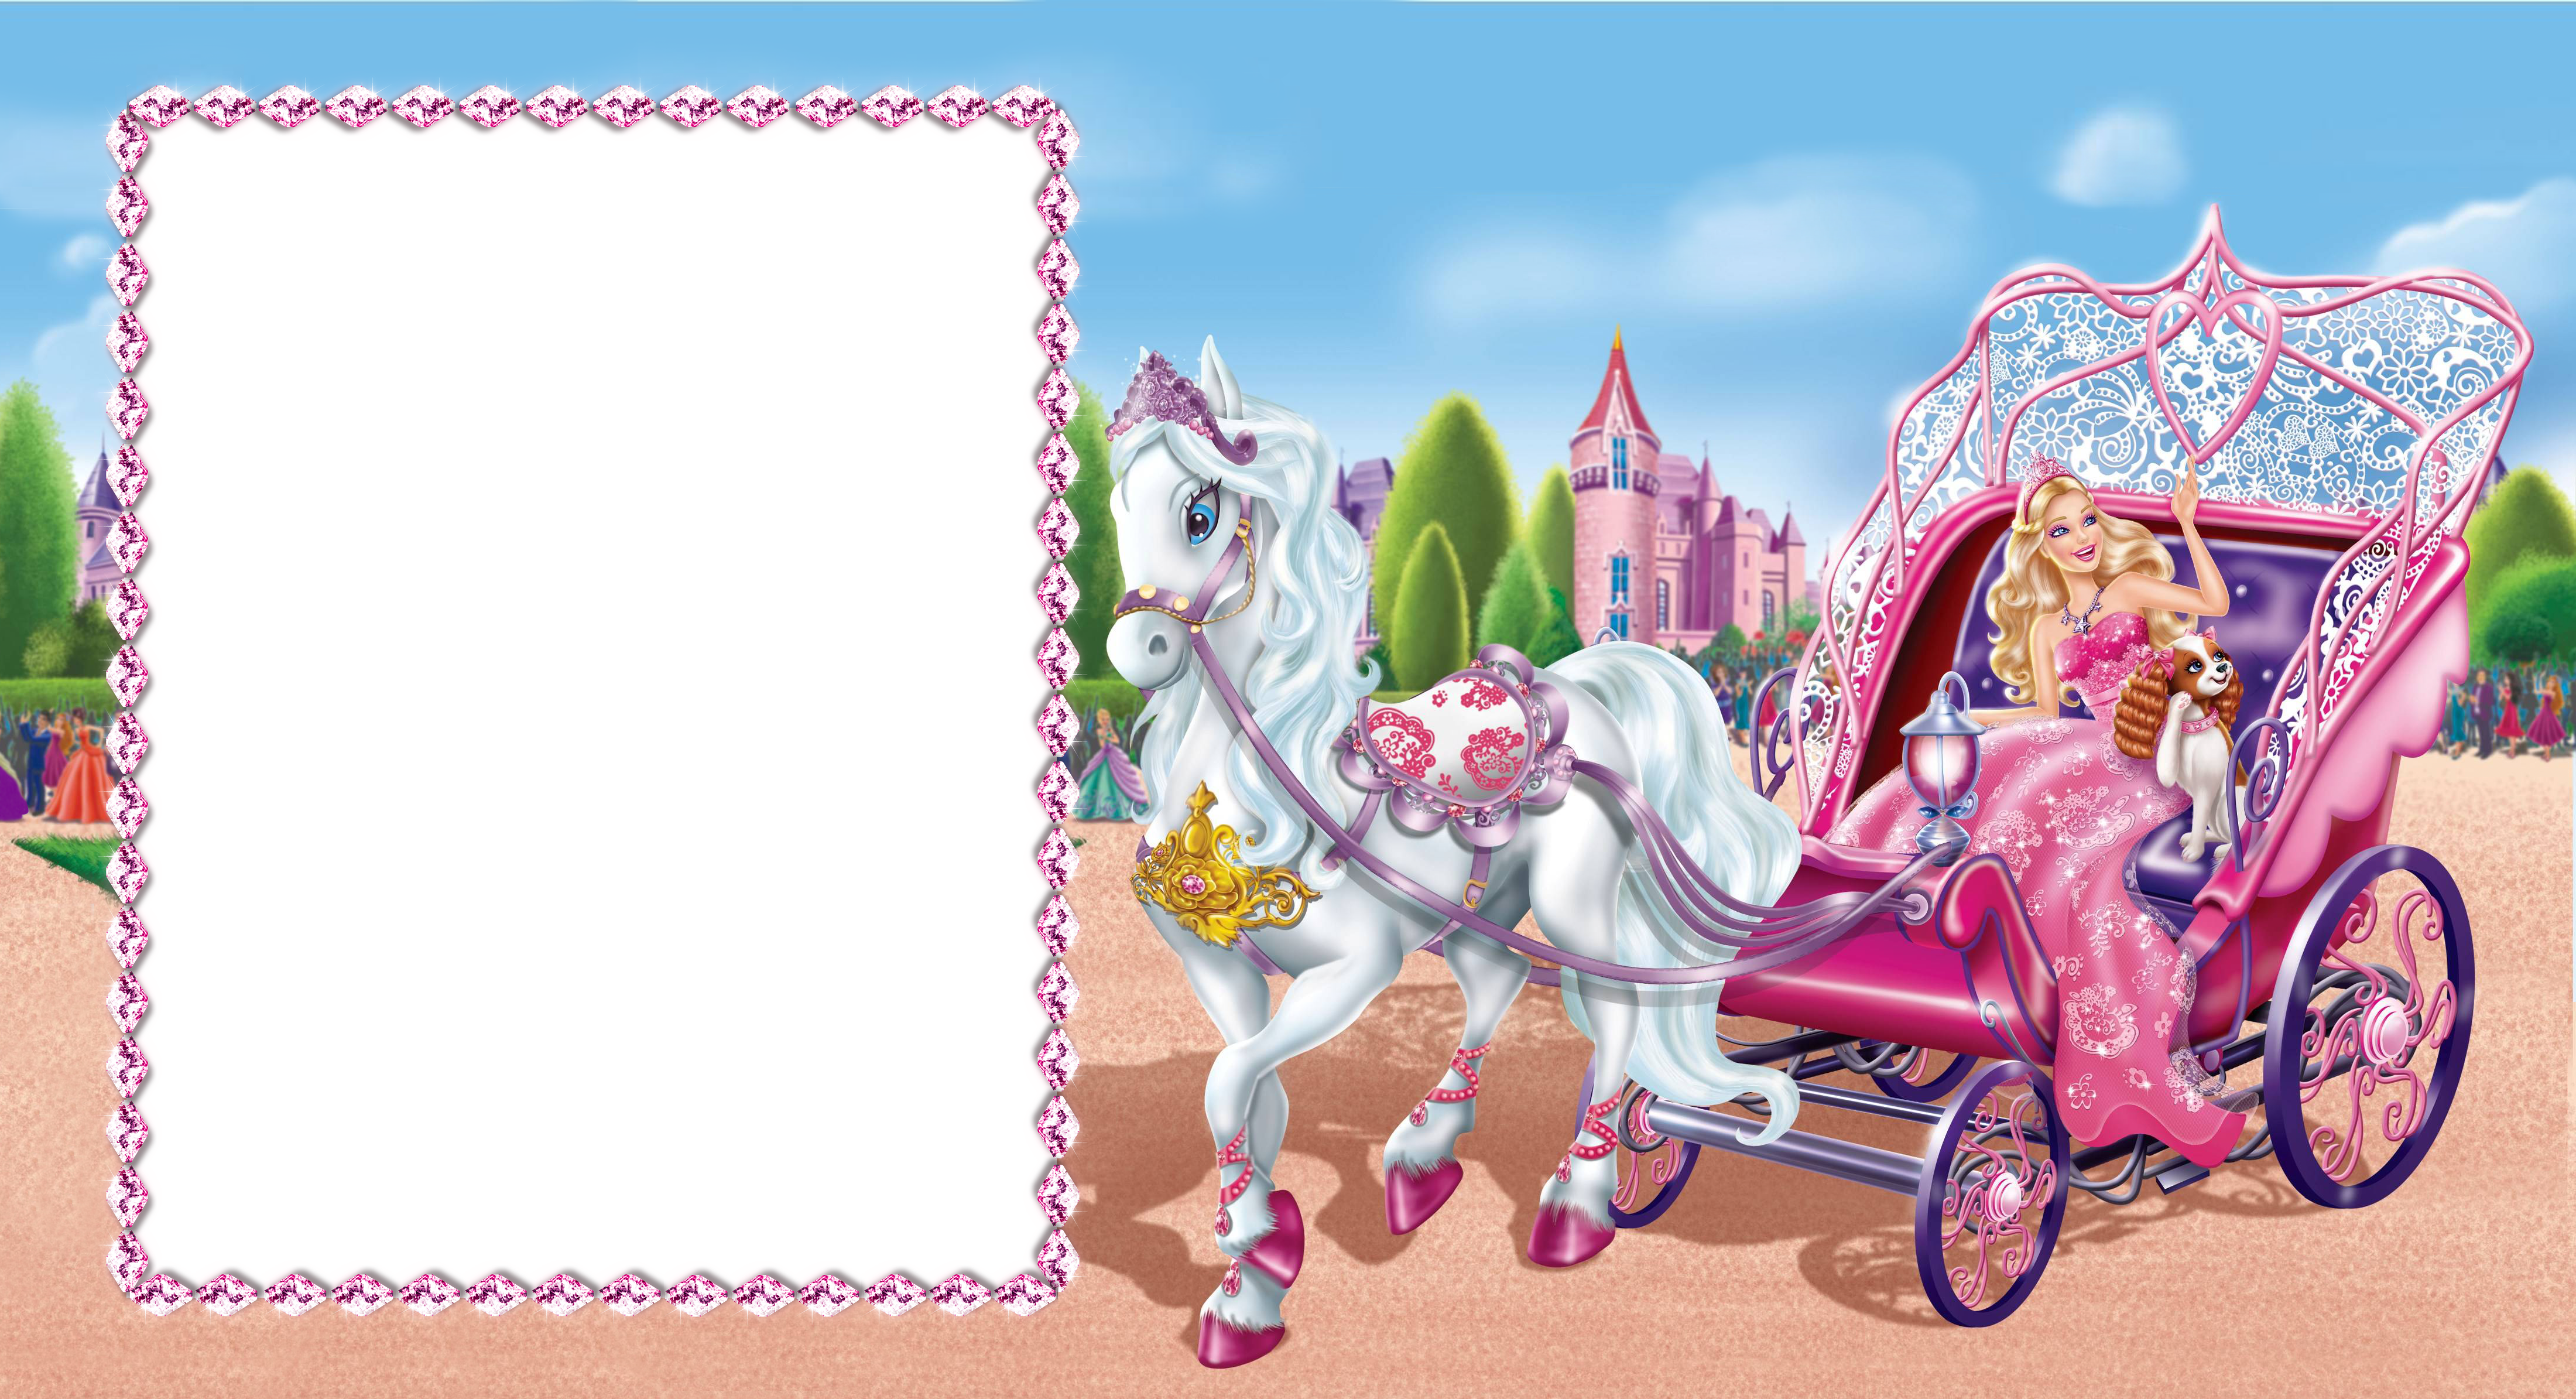 clipart black and white stock Barbie cute transparent photo. Carriage clipart frame.